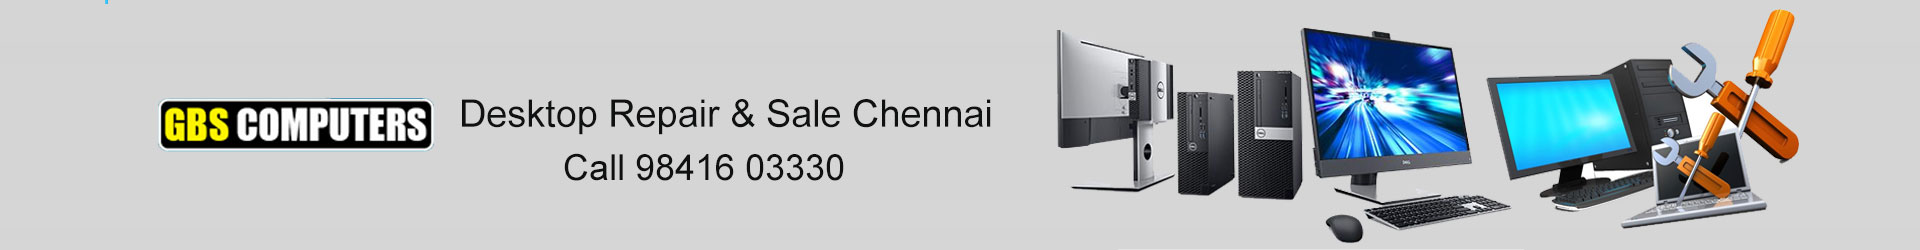 desktop showrooms in chennai